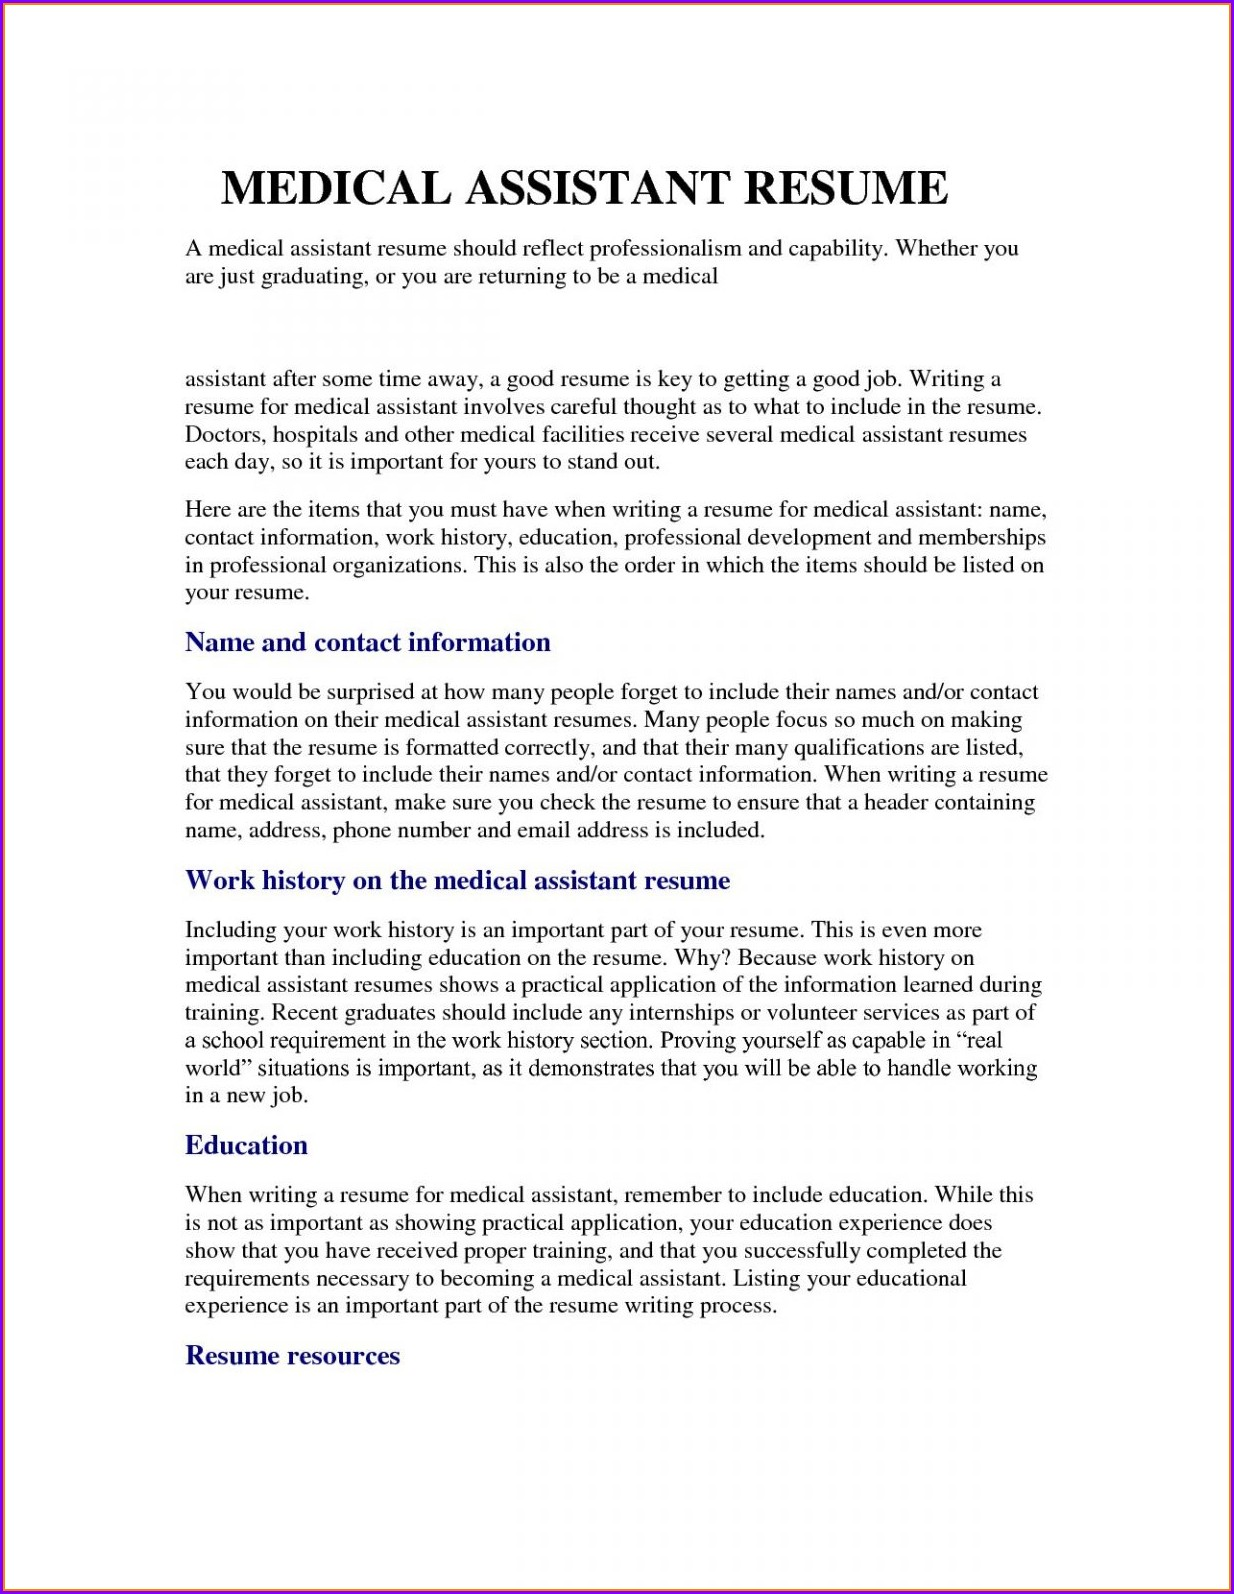 Professional Resume Examples For Medical Assistant